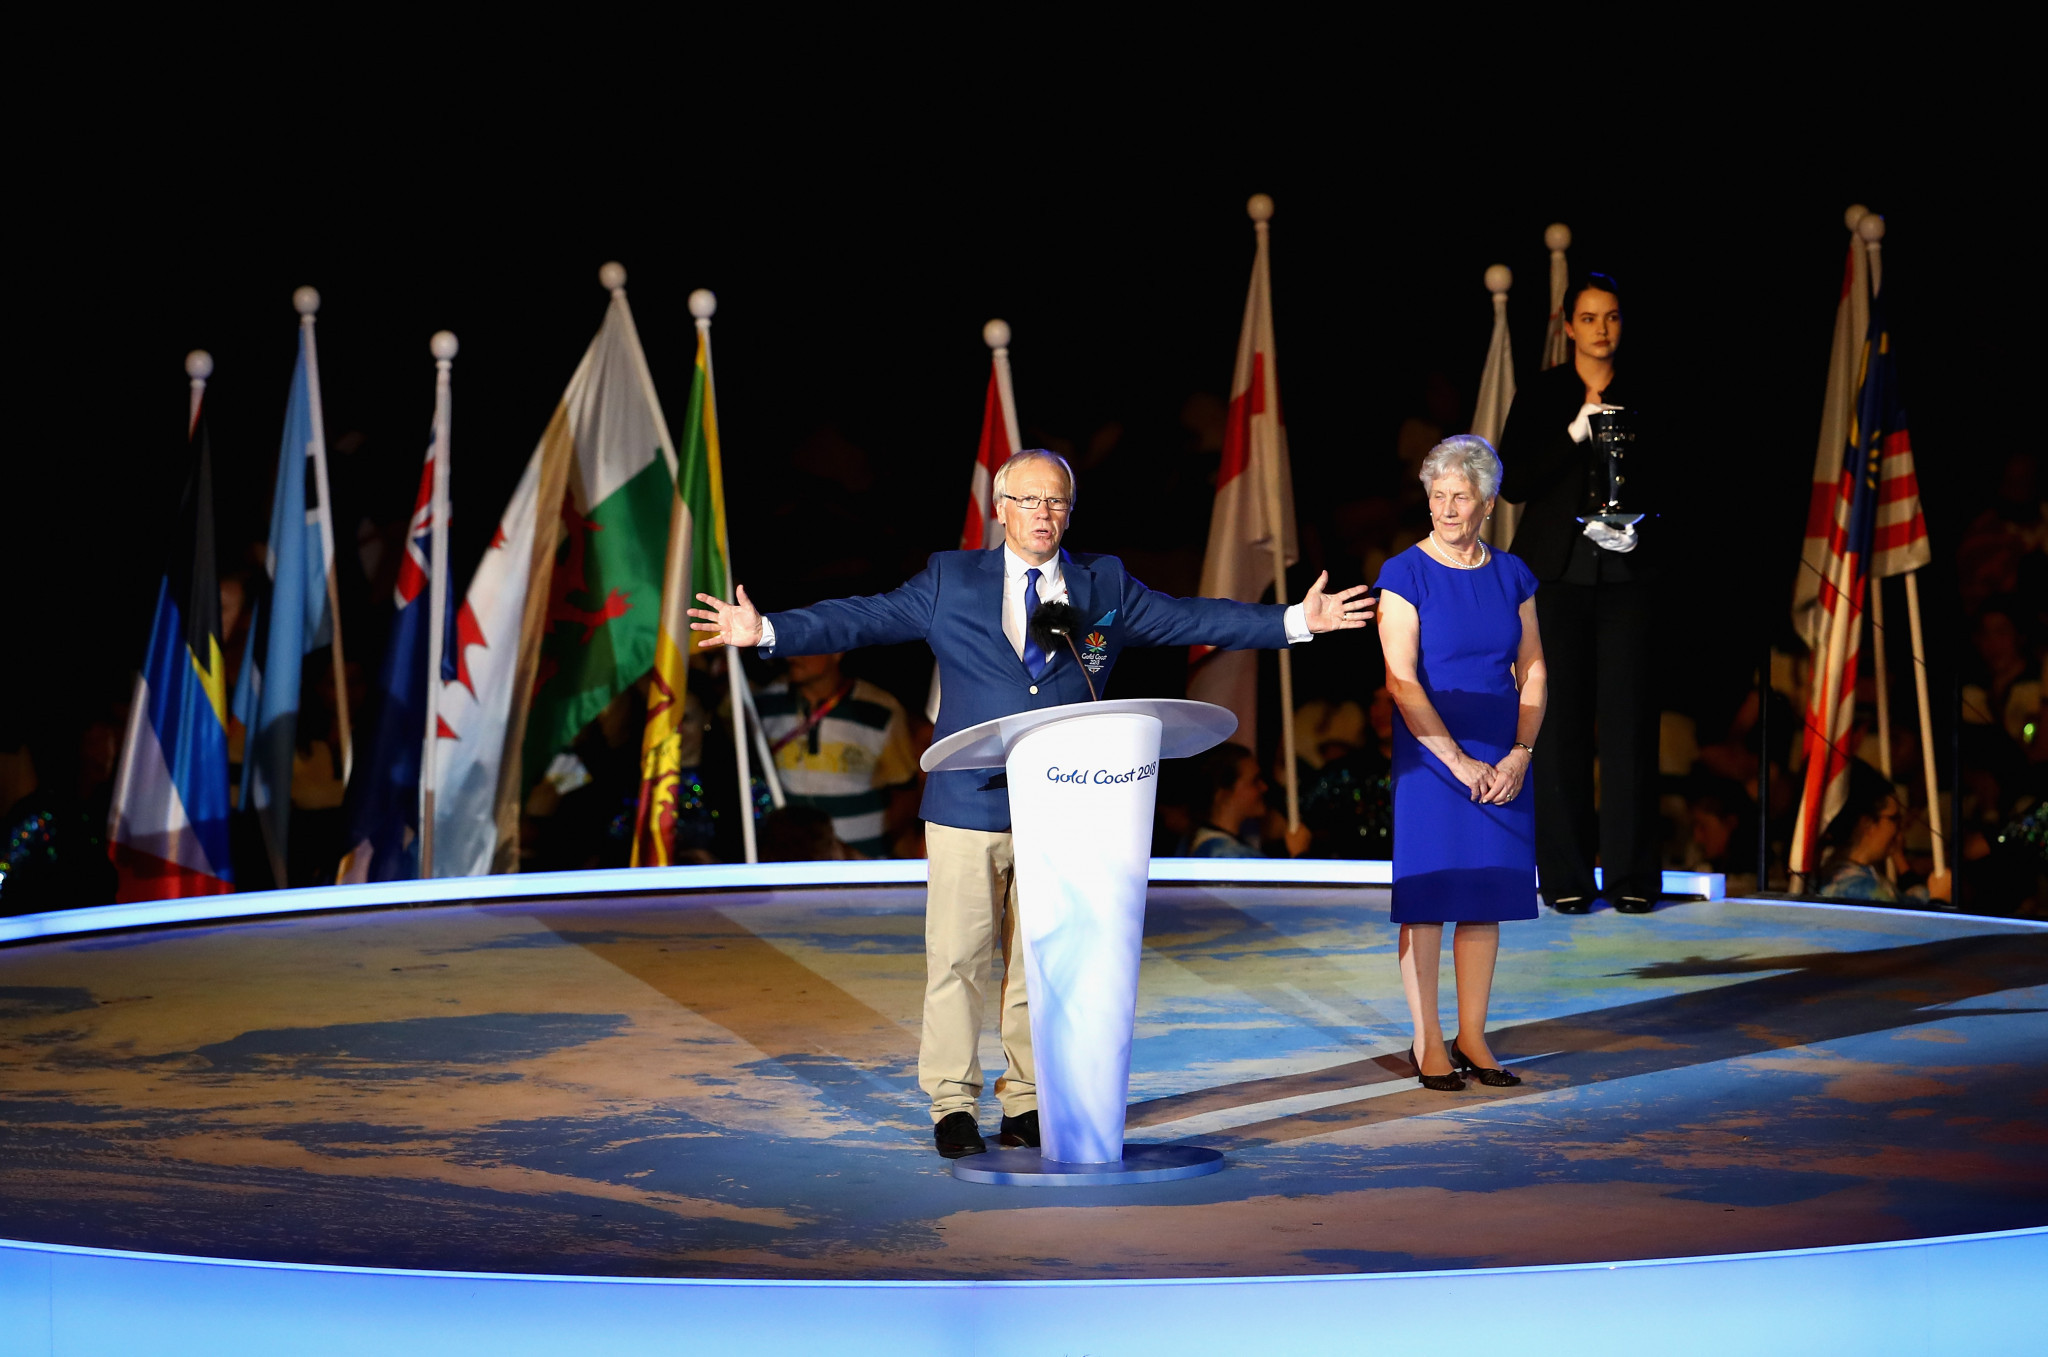 Peter Beattie makes a speech during the Closing Ceremony for the Gold Coast 2018 Commonwealth Games at Carrara Stadium ©Getty Images